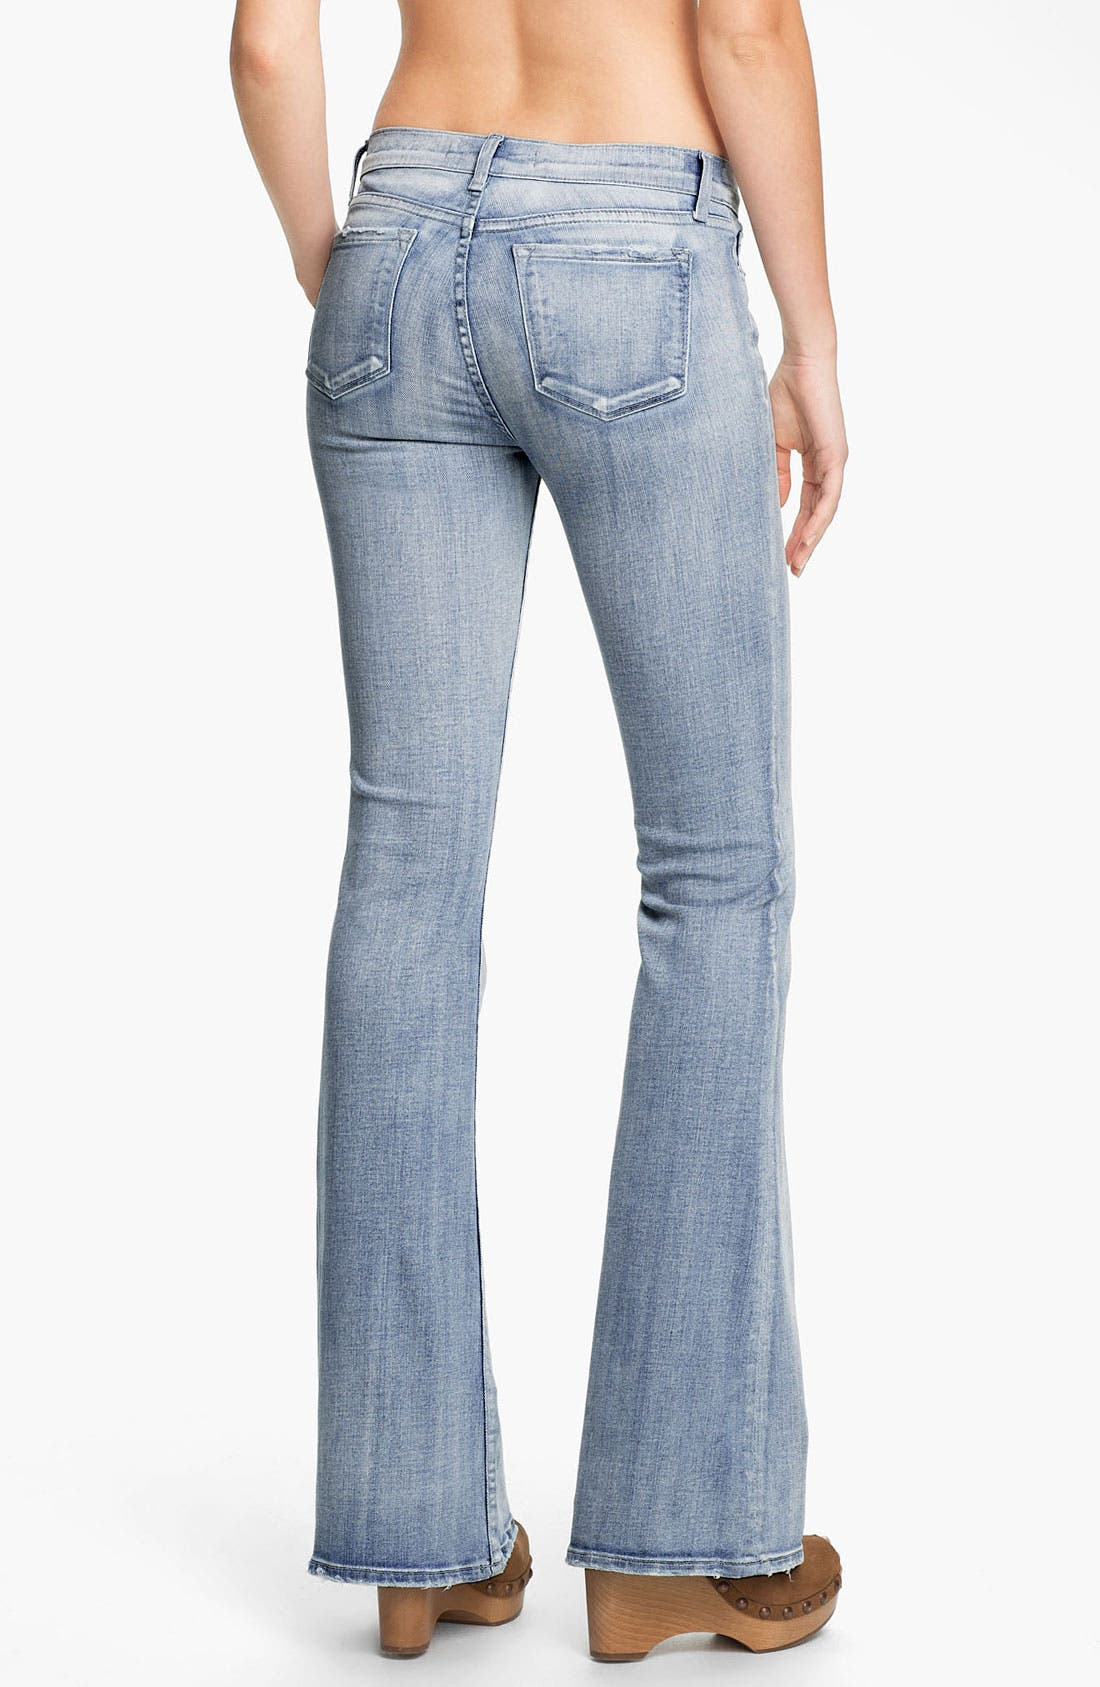 Alternate Image 2  - J Brand 'Babe' Flare Leg Jeans (Afterlife)